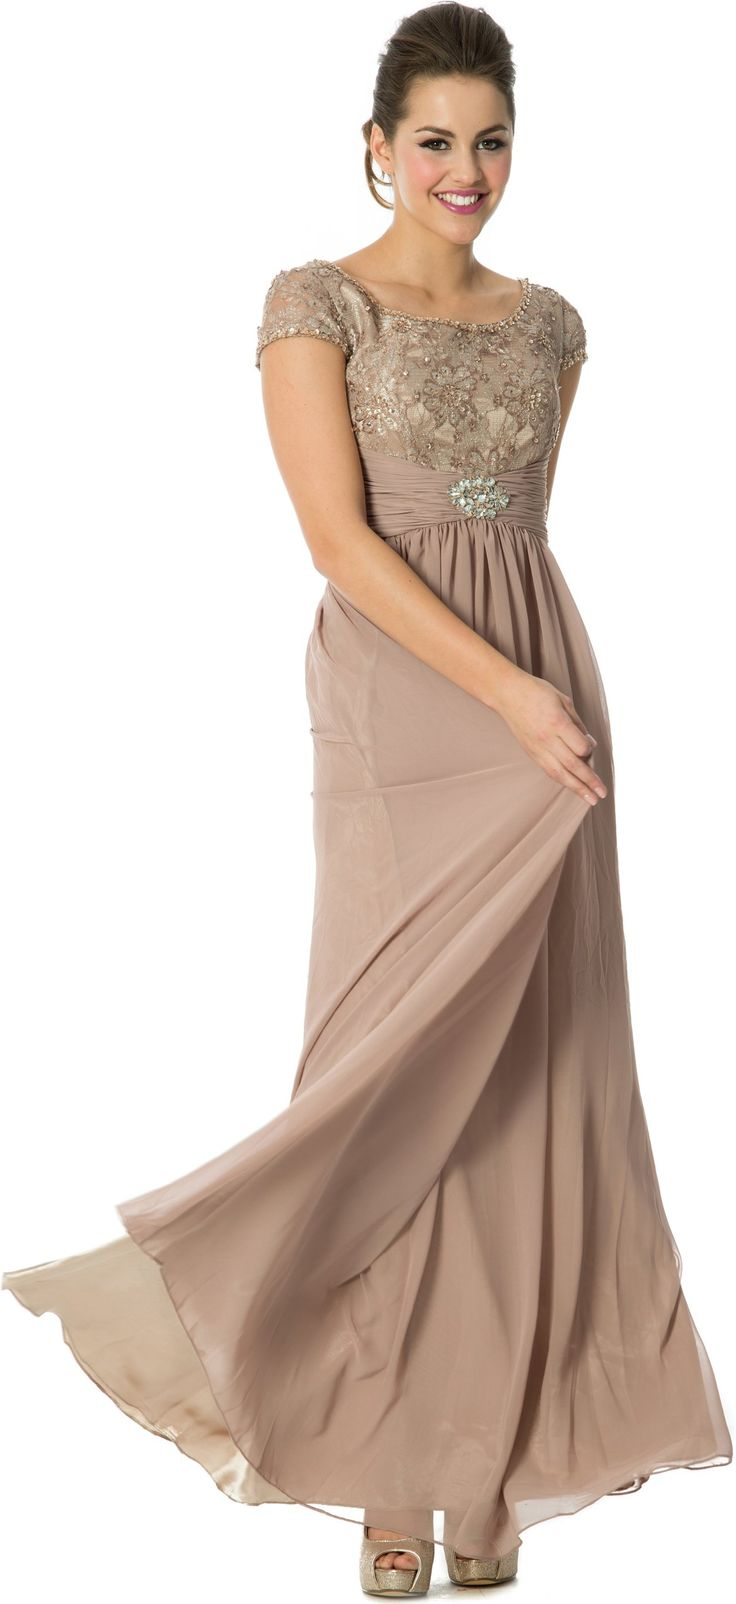 33 best bridesmaids dresses images on pinterest clothes prom metallic lace empire mother of the bride dress mocha ombrellifo Choice Image